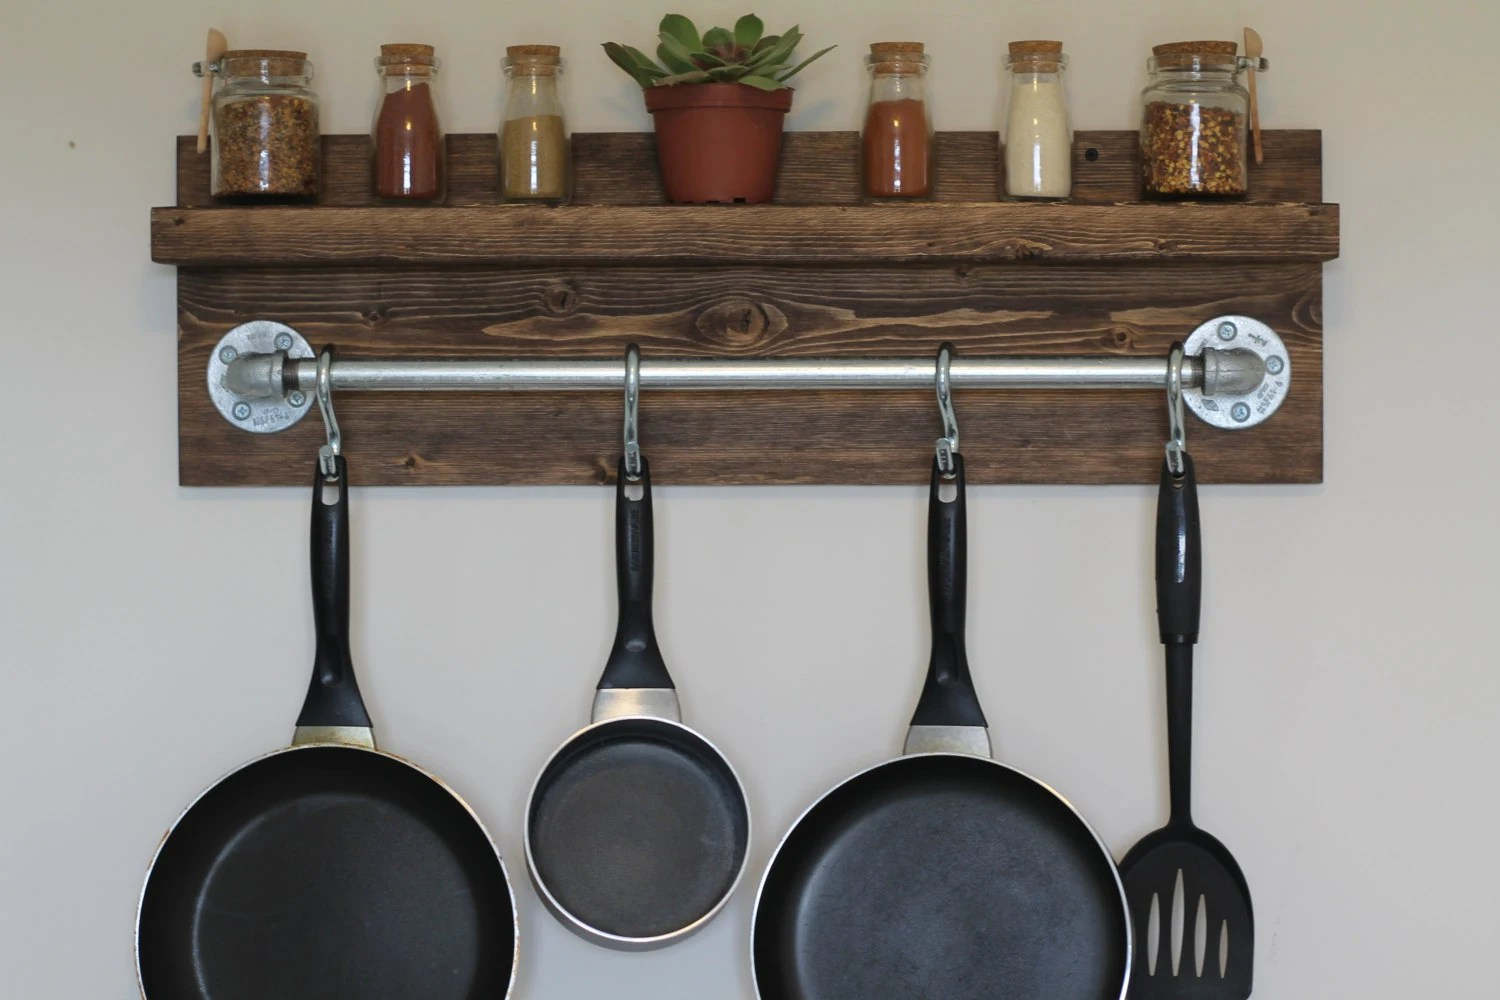 kitchen pot racks high table set rustic industrial rack gifts for him wall shelf etsy image 0